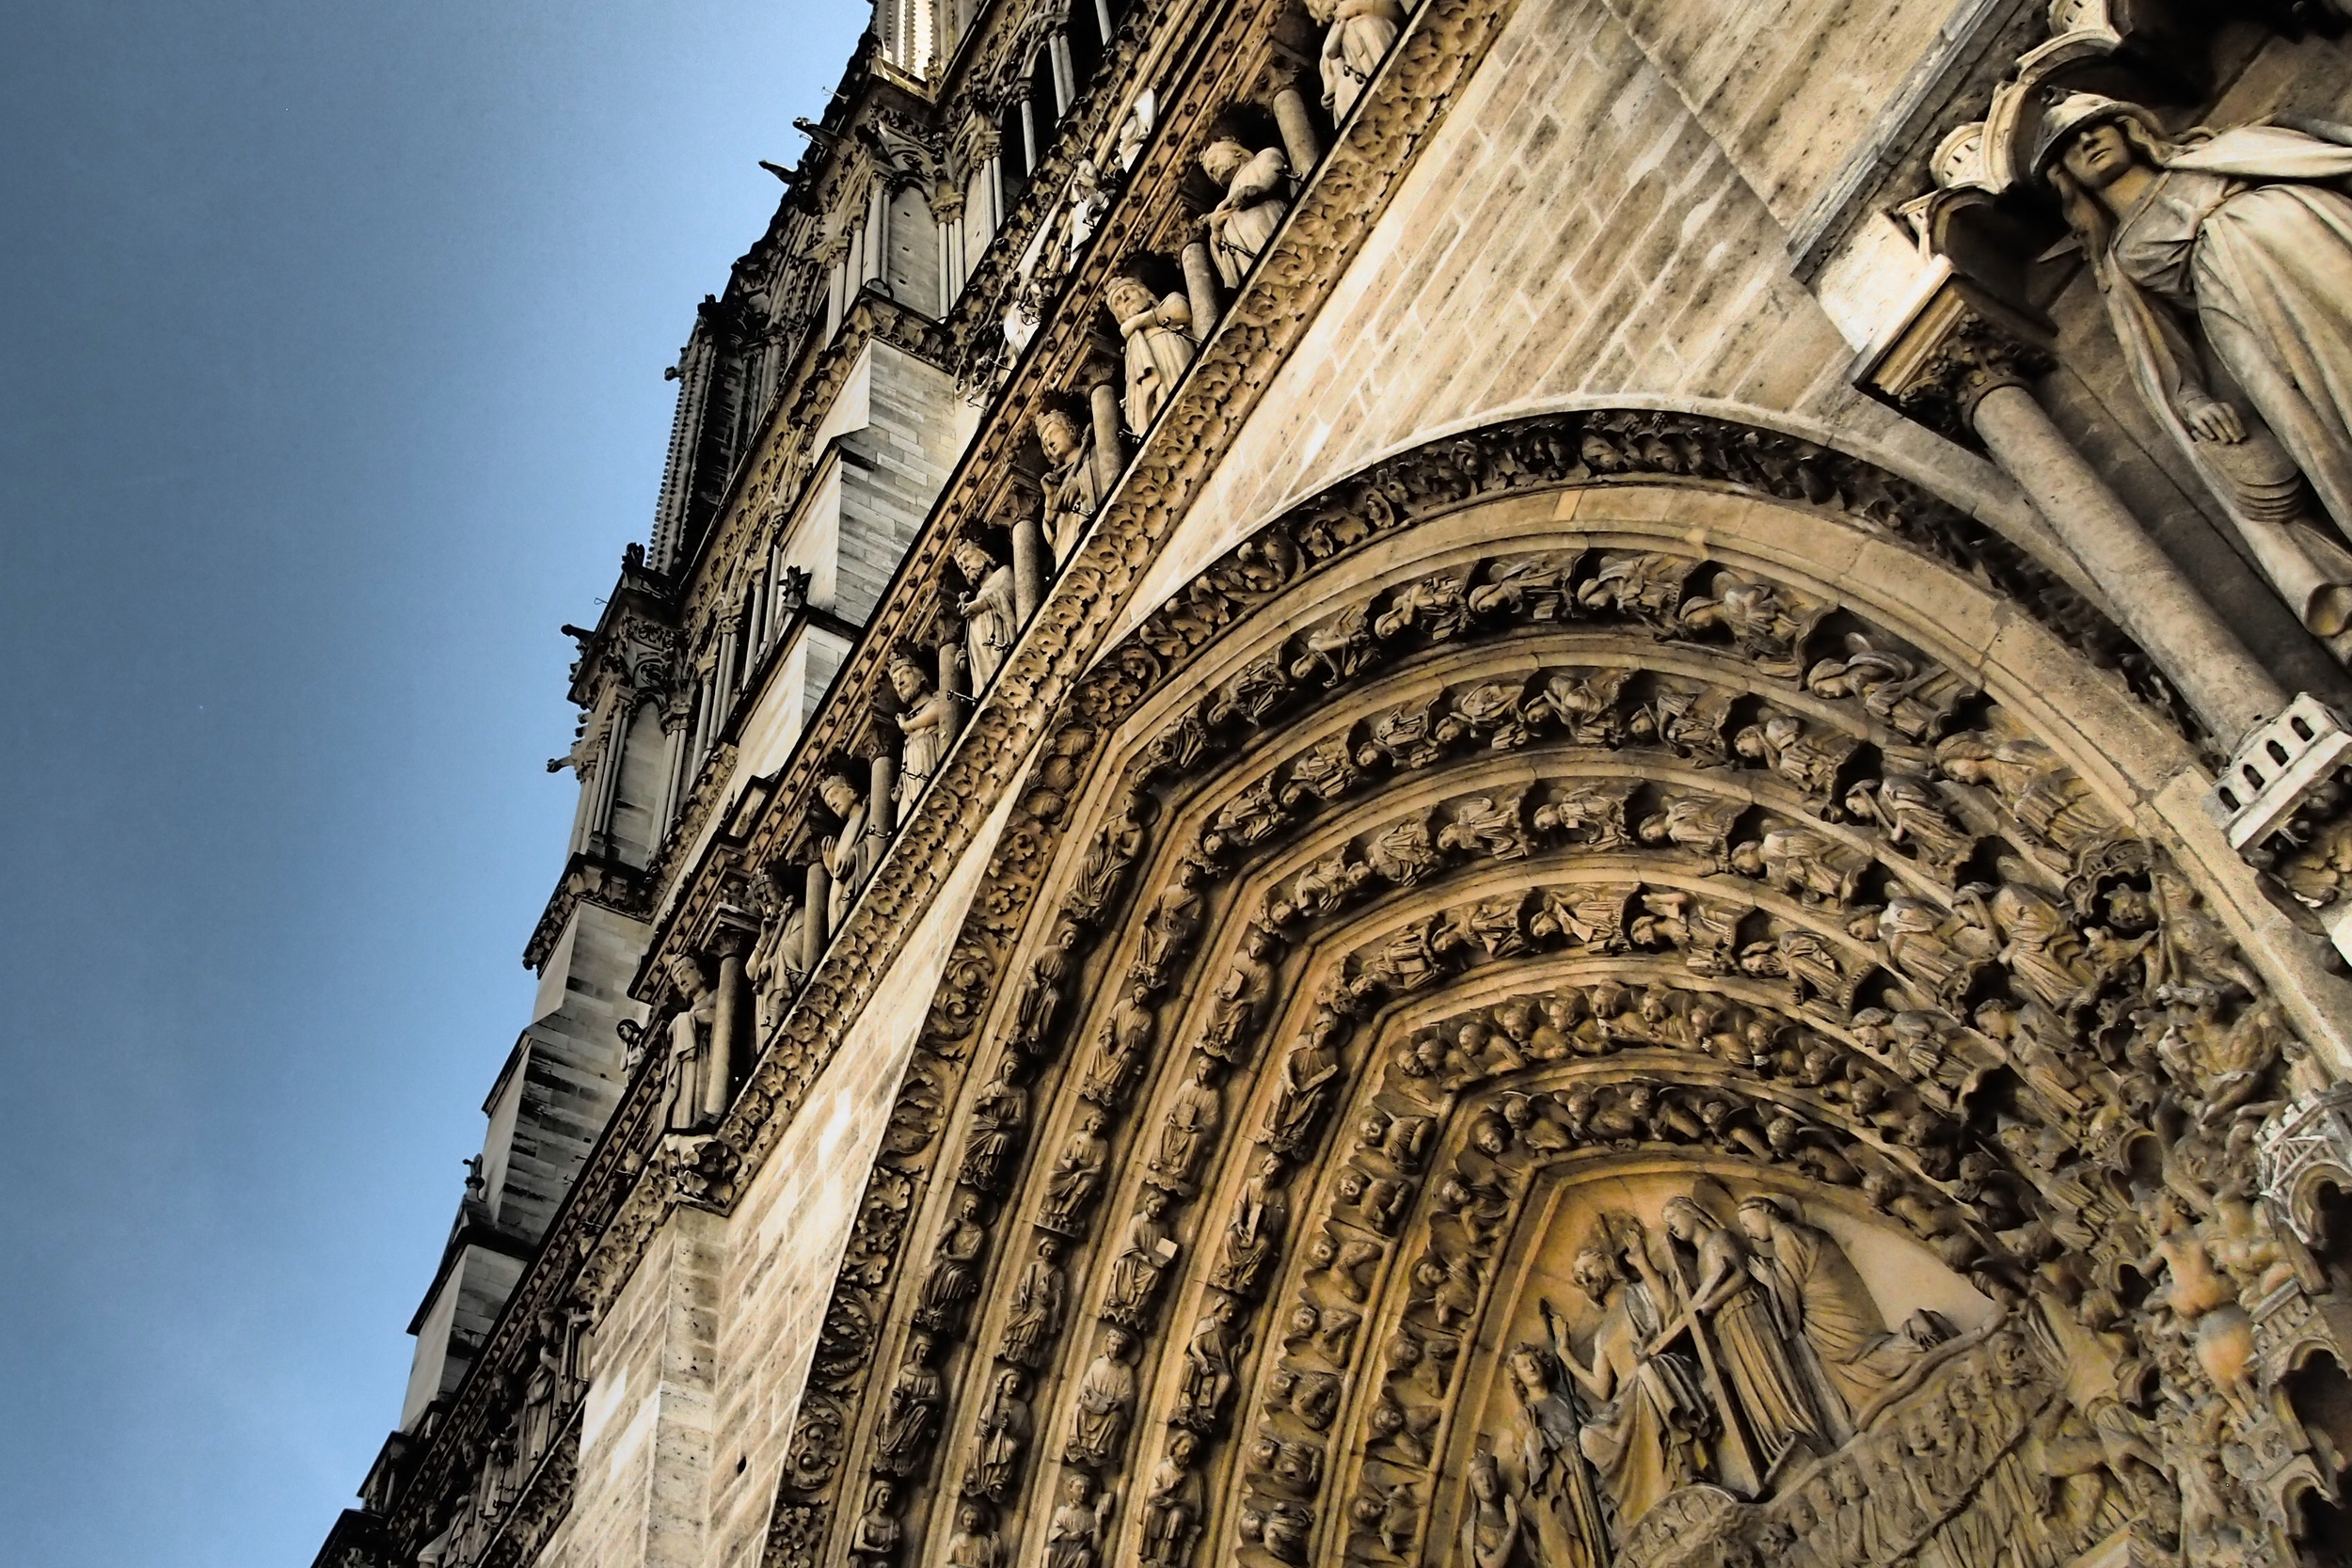 Upwards view of the Notre Dame